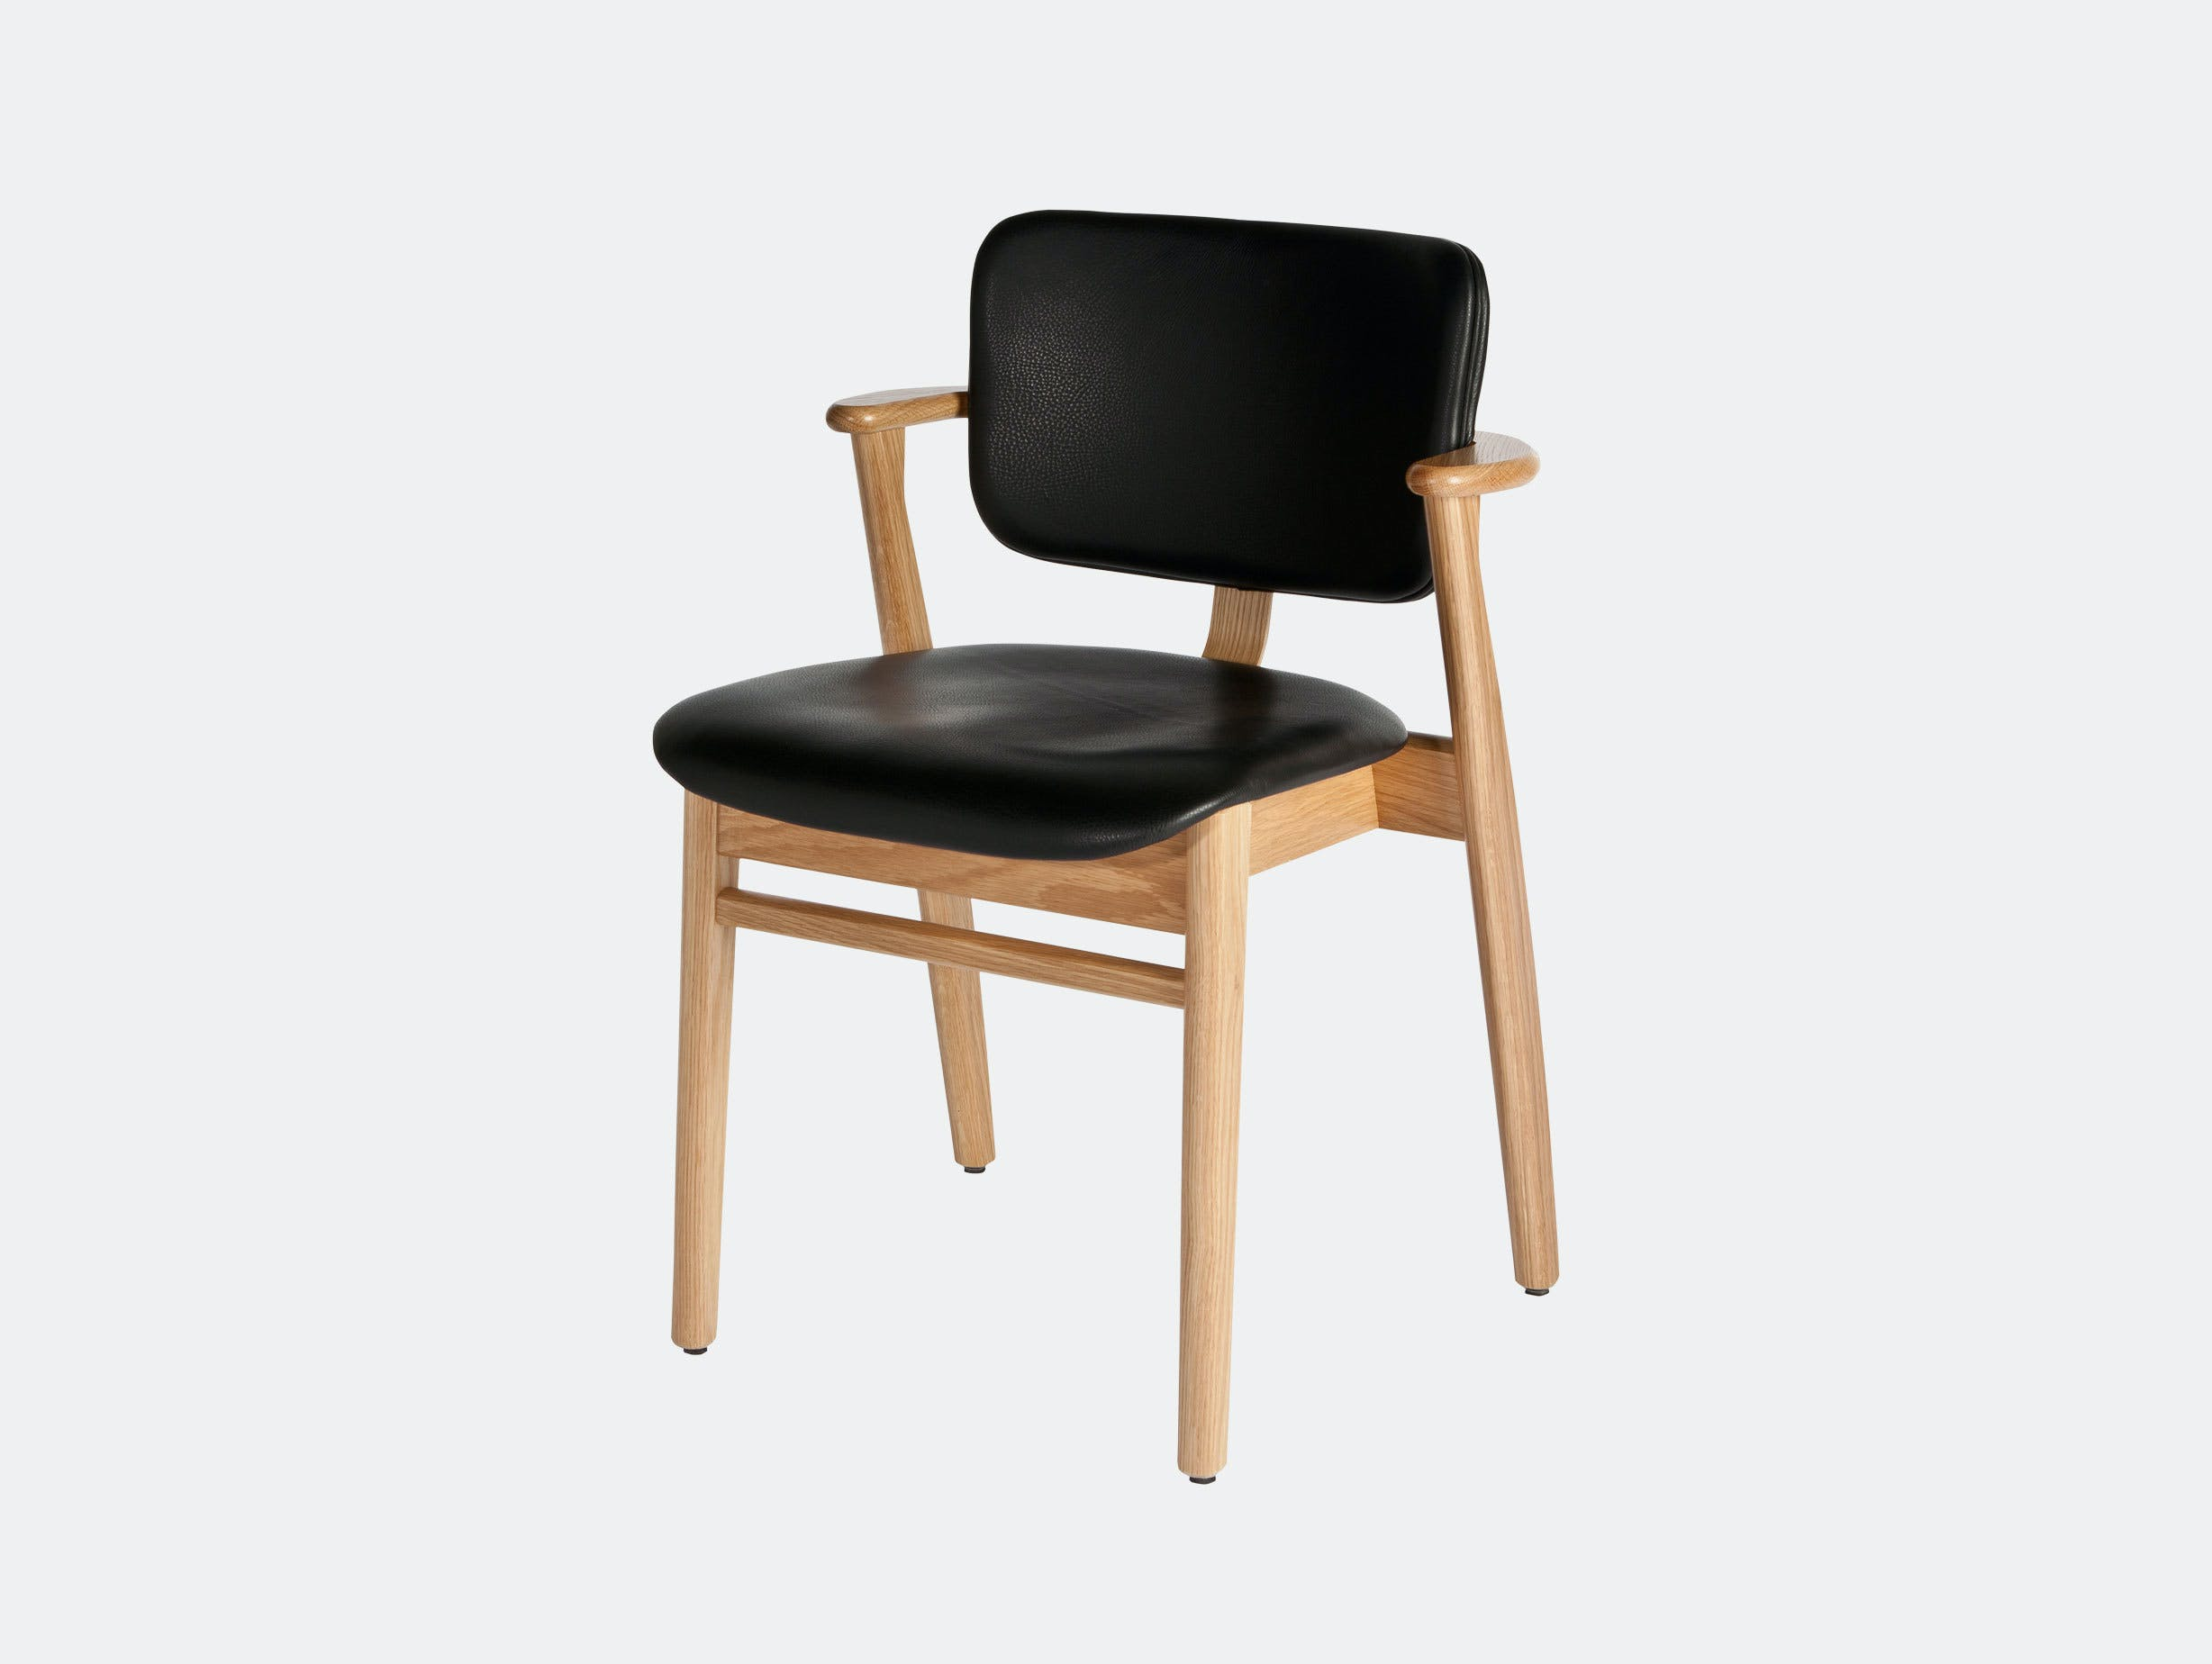 Artek Domus Chair Oak Black Leather Seat Photo Juha Nenonen